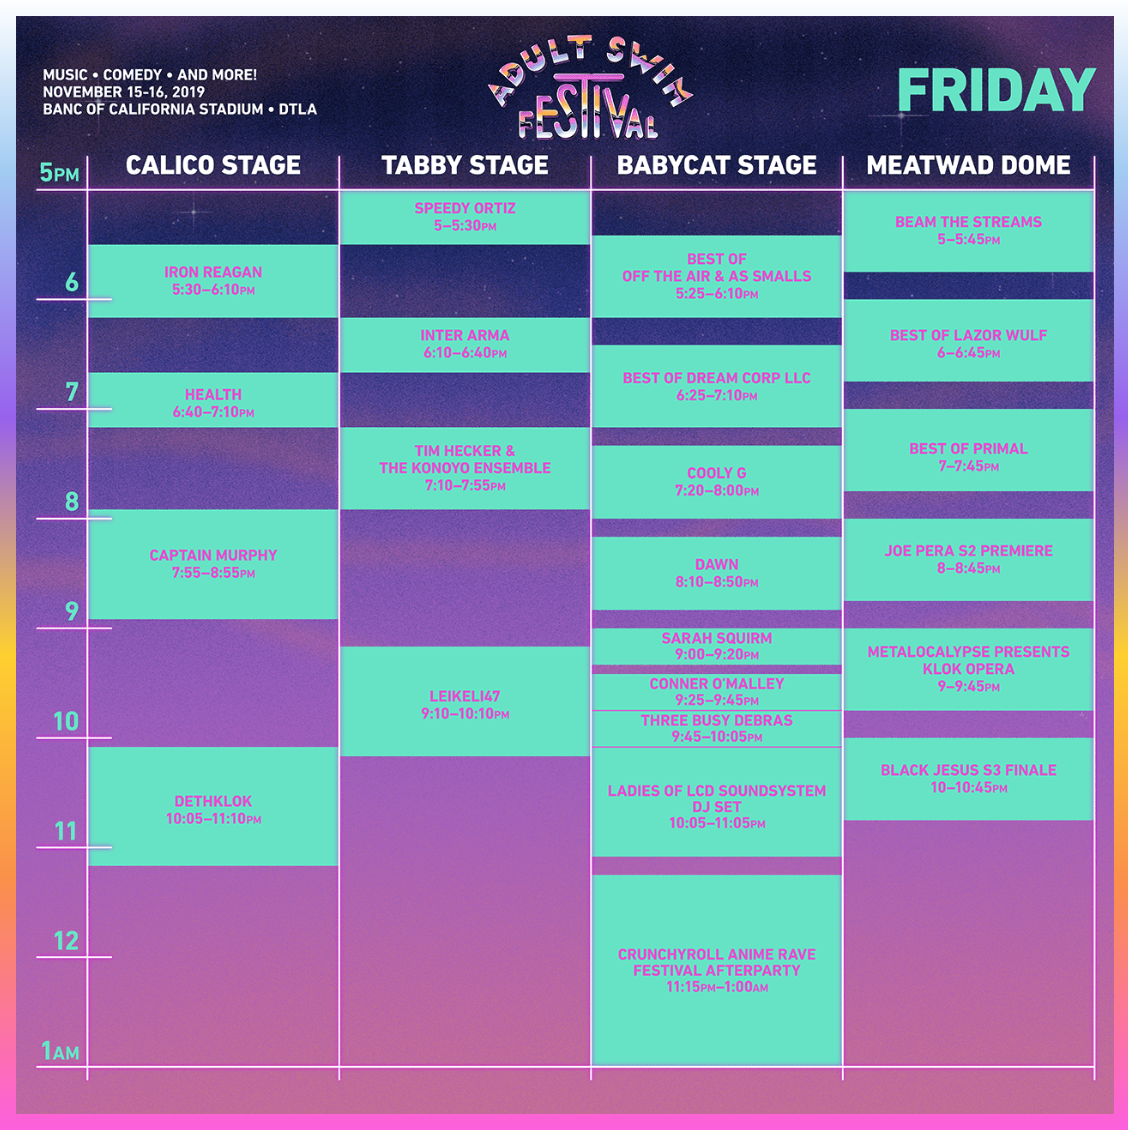 Adult Swim Festival 2019 - Friday Set Times